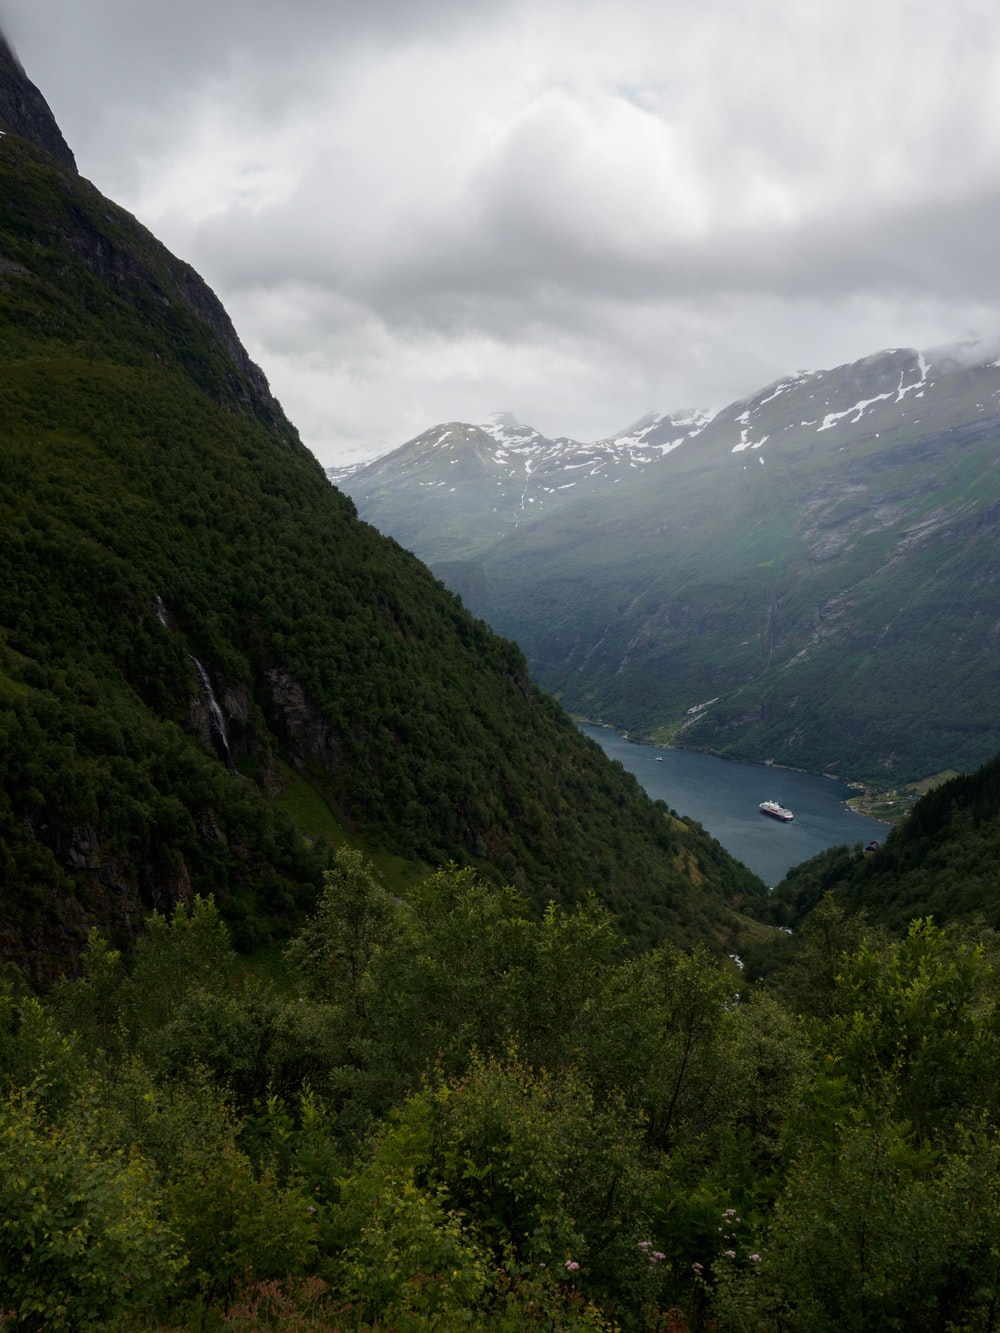 green mountains under white cloudy sky during daytime